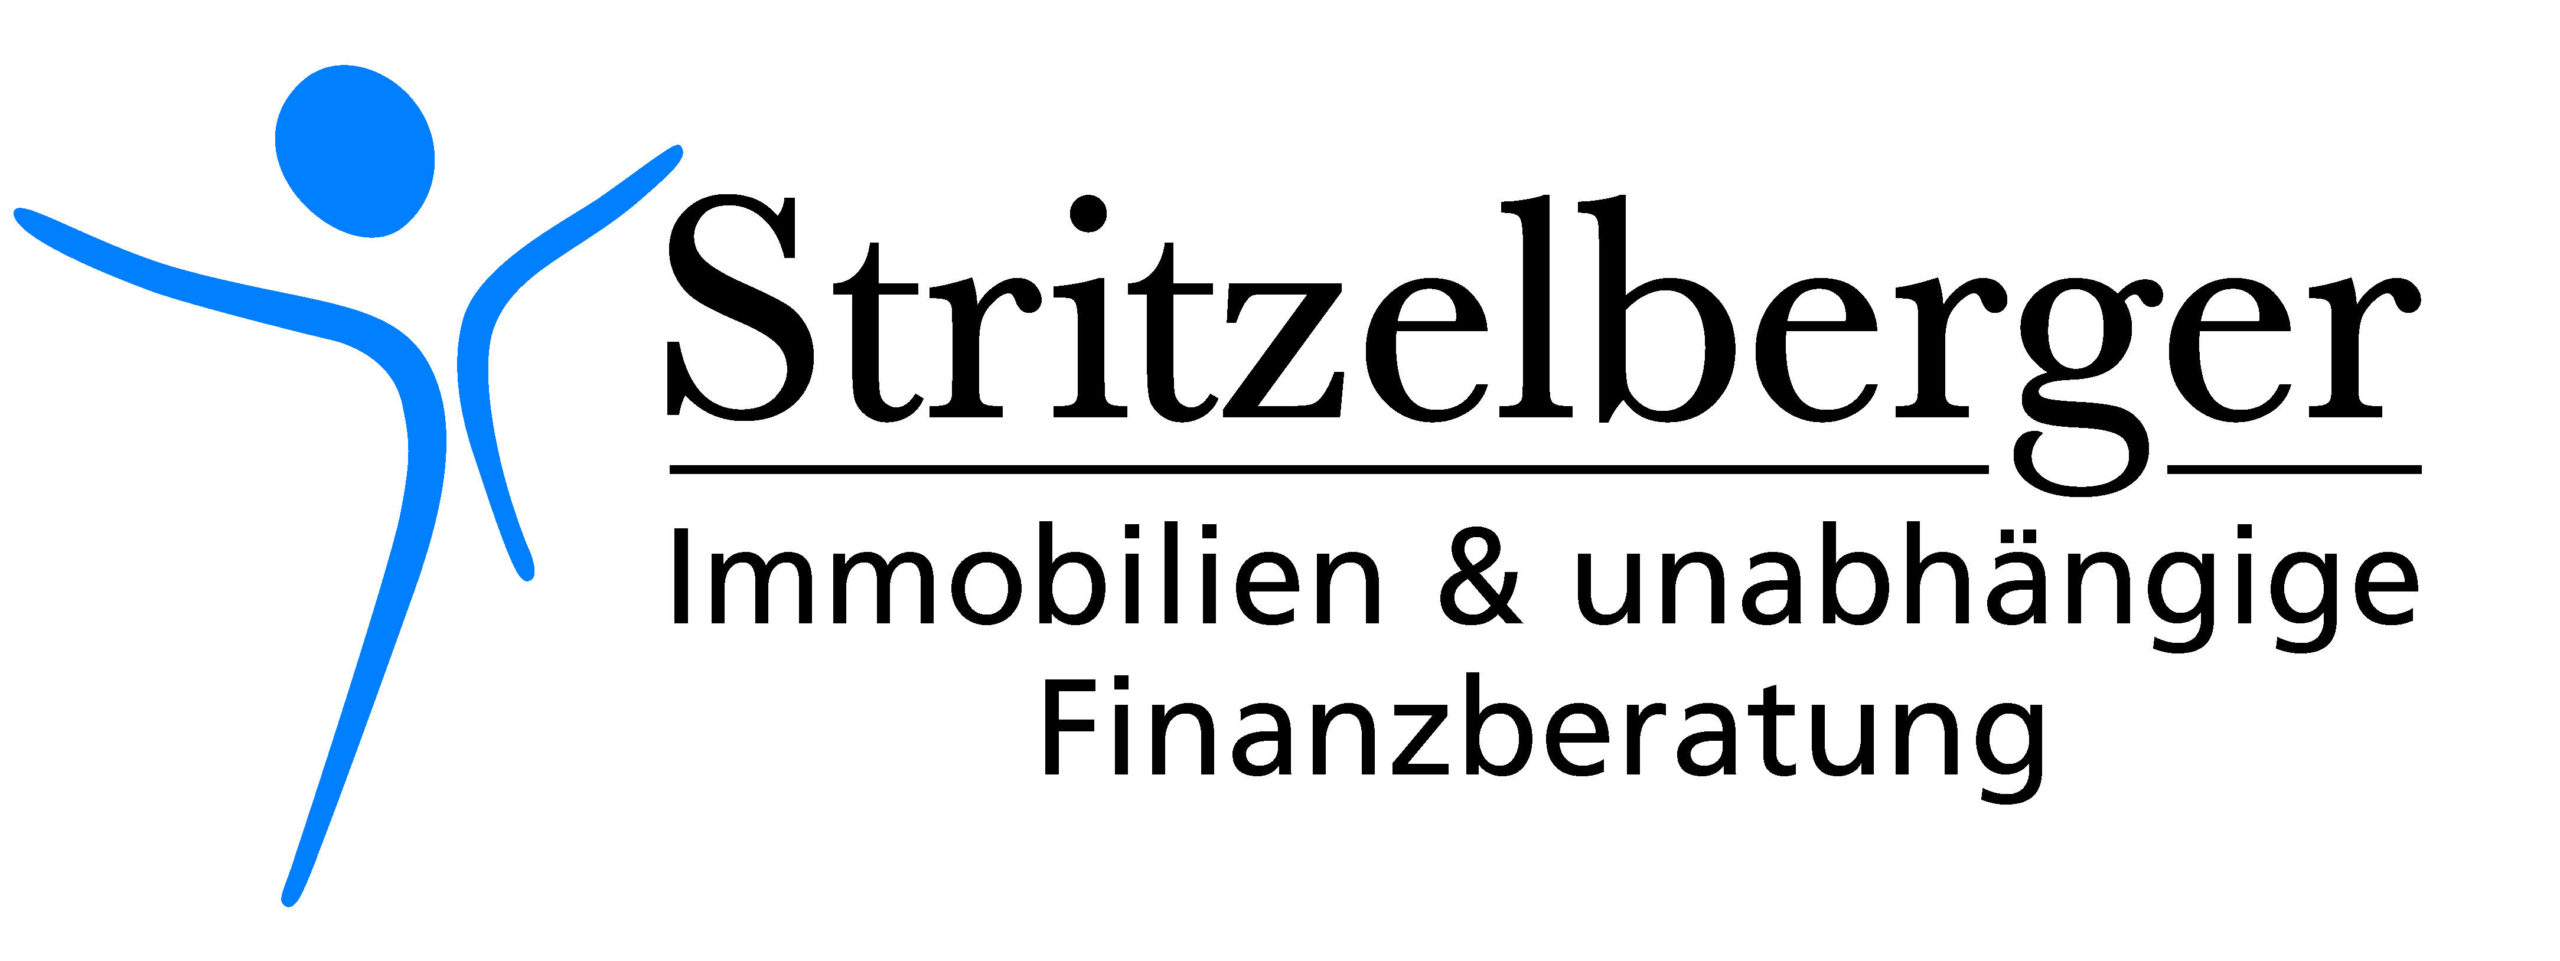 stritzelberger.net-Logo